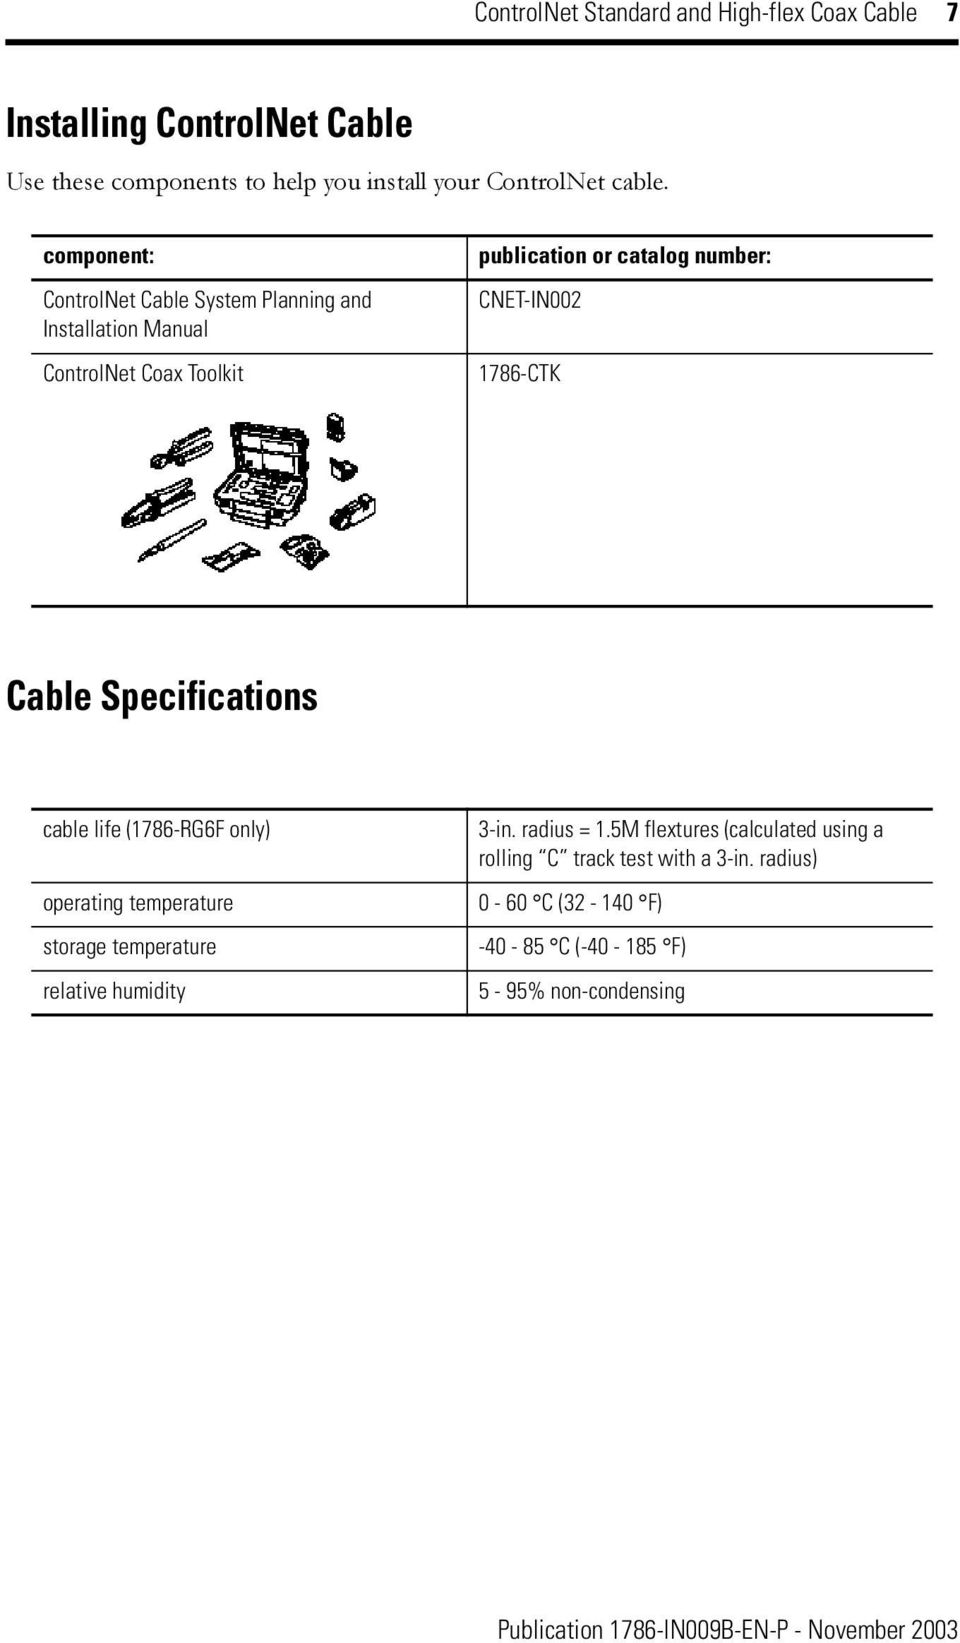 component: ControlNet Cable System Planning and Installation Manual ControlNet Coax Toolkit publication or catalog number: CNET-IN002